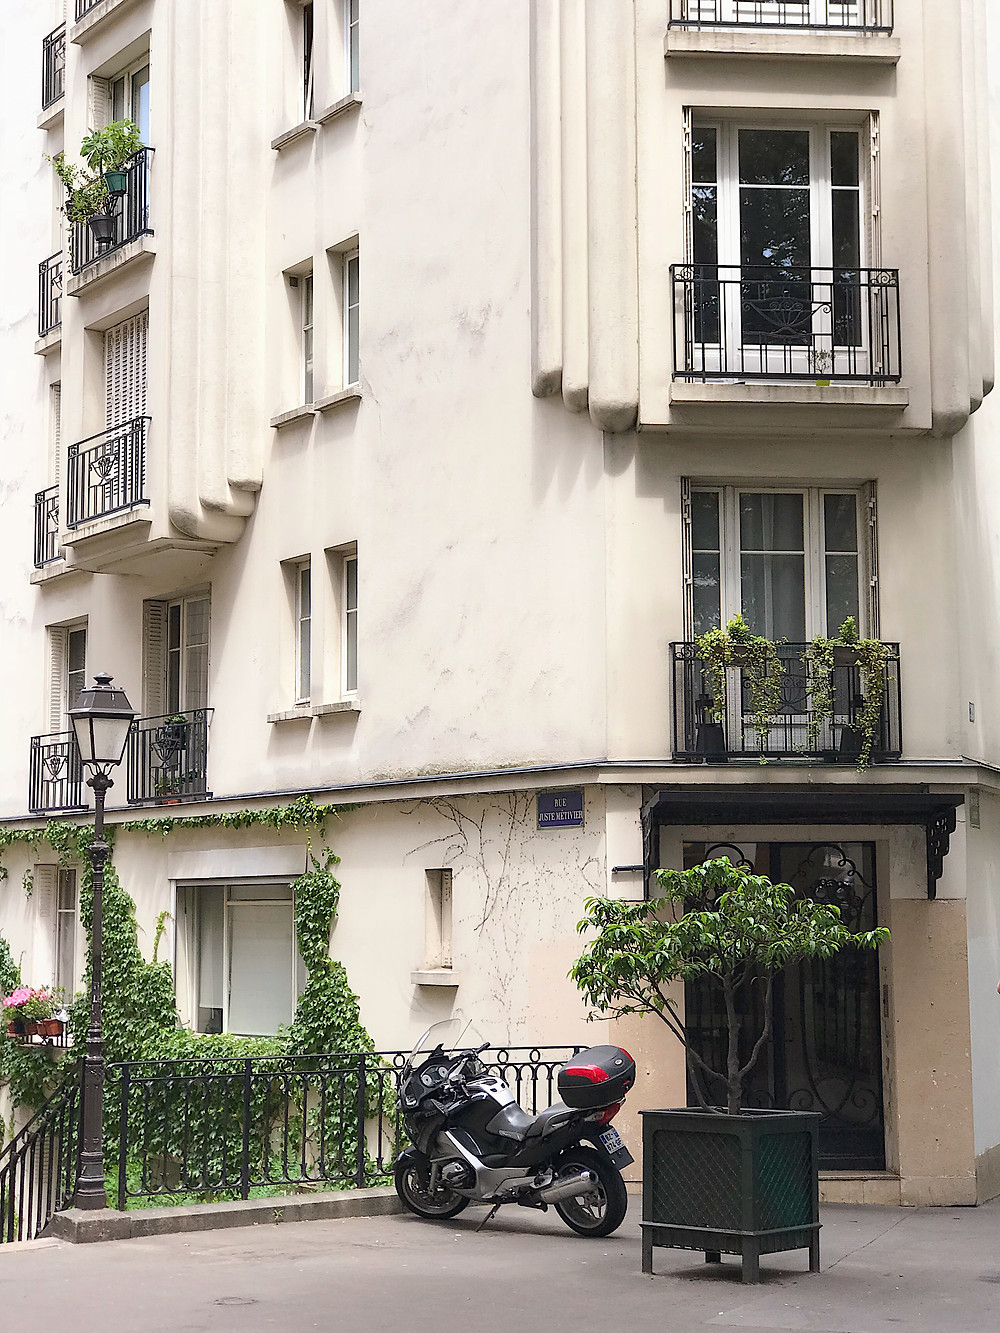 pretty building with motorcycle parked in front